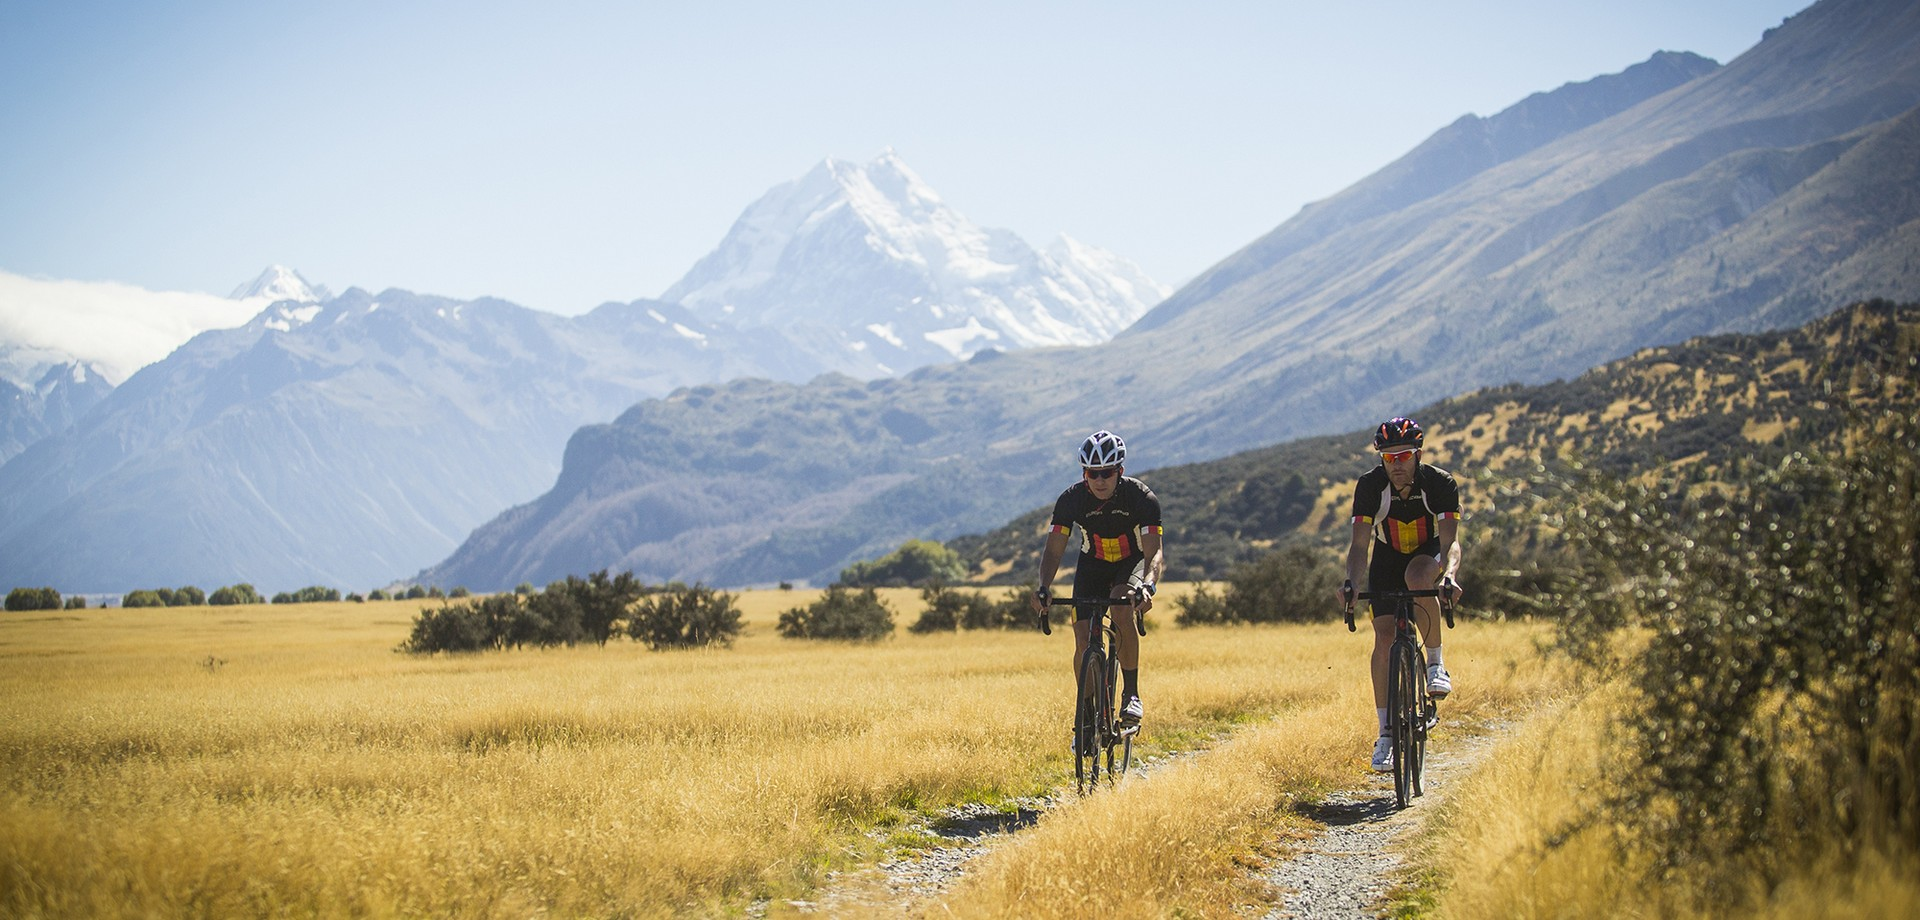 Day 1: Mount Cook to Twizel 75km